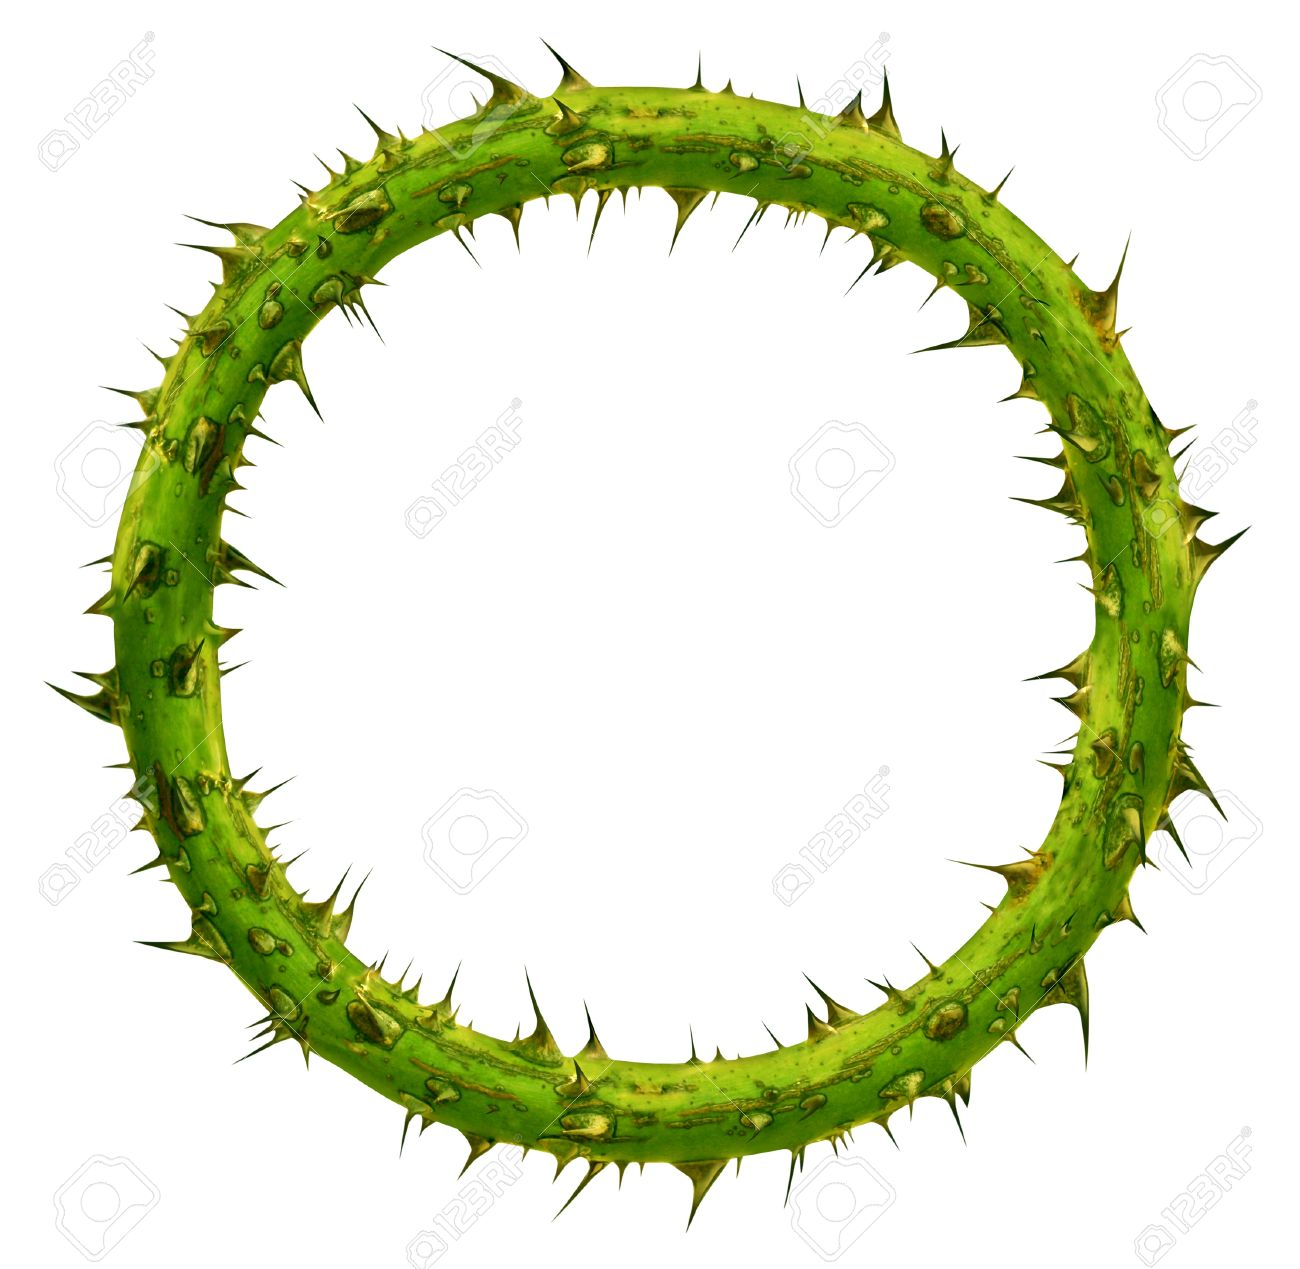 Crown of thorns as a circular plant branch frame with a blank area with pointy needles as a symbol of sacrifice and courage isolated on a white background Stock Photo - 15206263